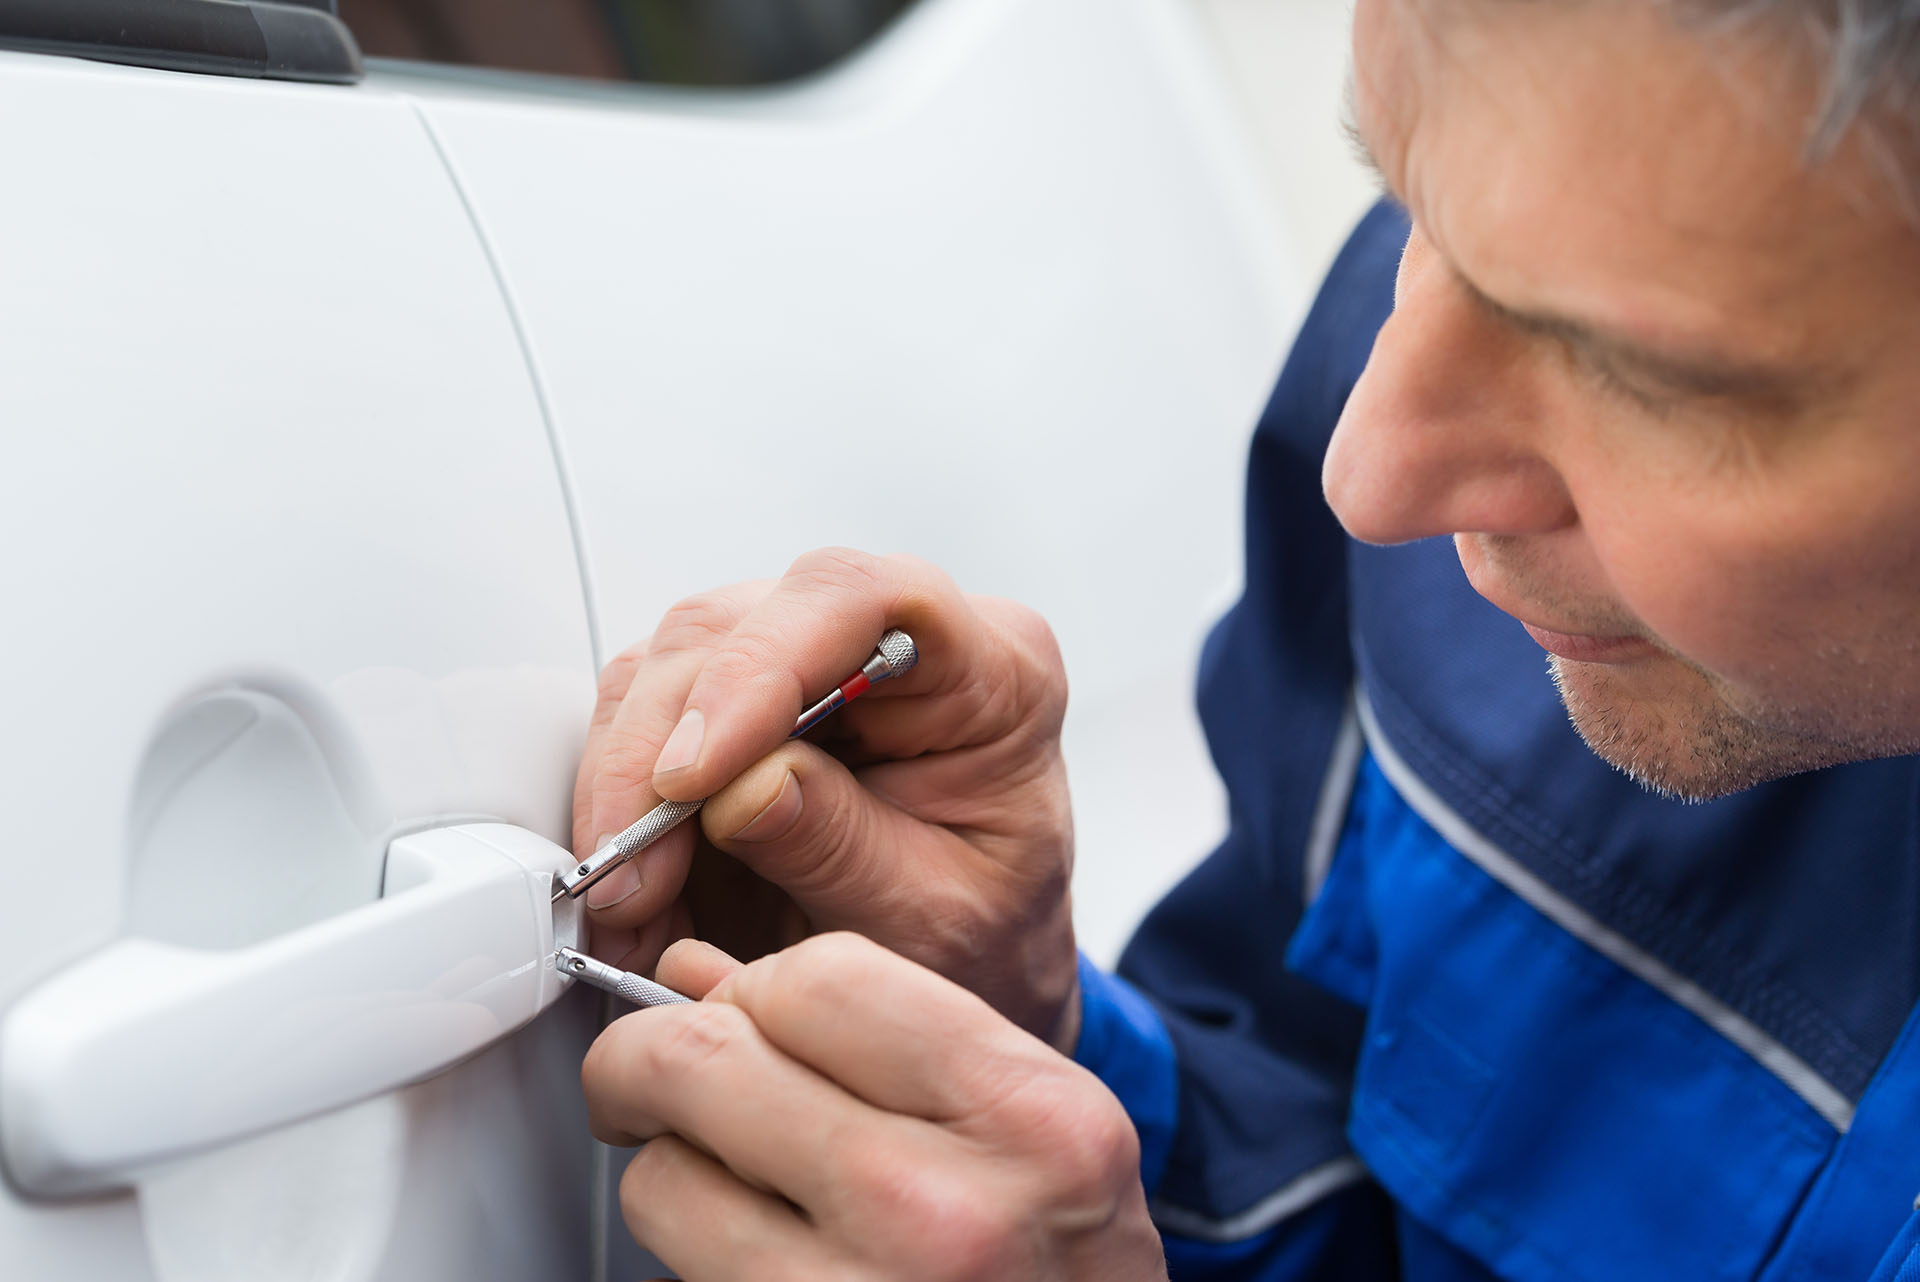 Top Locksmith Service that gives you Security and Safety